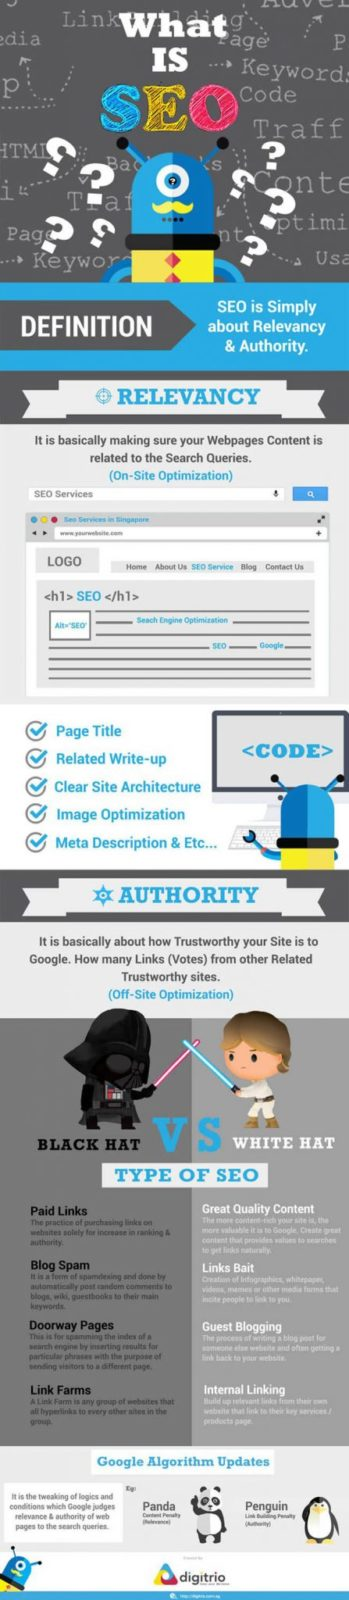 What Is SEO - Simple Explanation [Infographic]